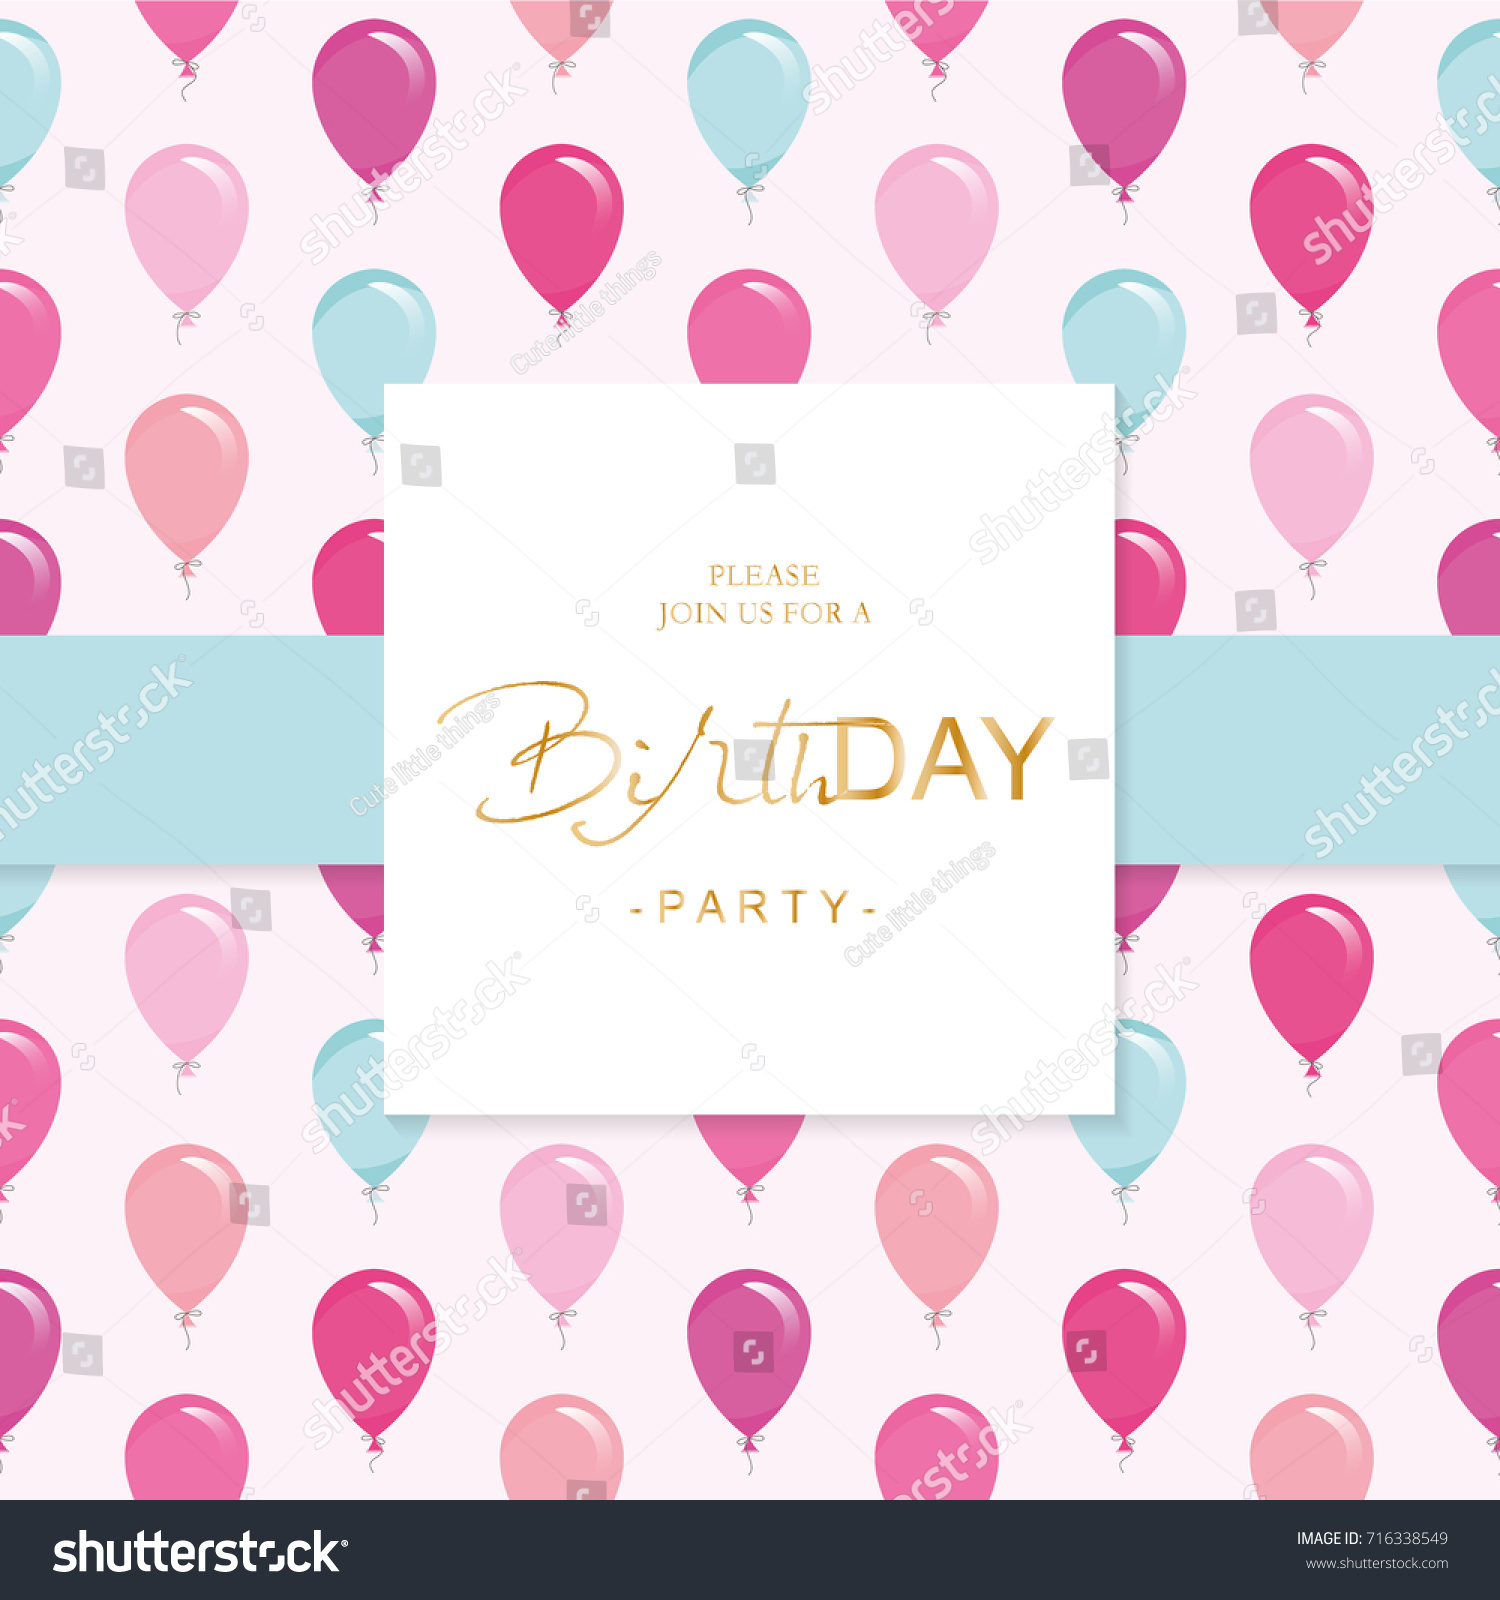 Birthday party invitation card template included stock vector birthday party invitation card template included seamless pattern with glossy pink and blue balloons stopboris Image collections